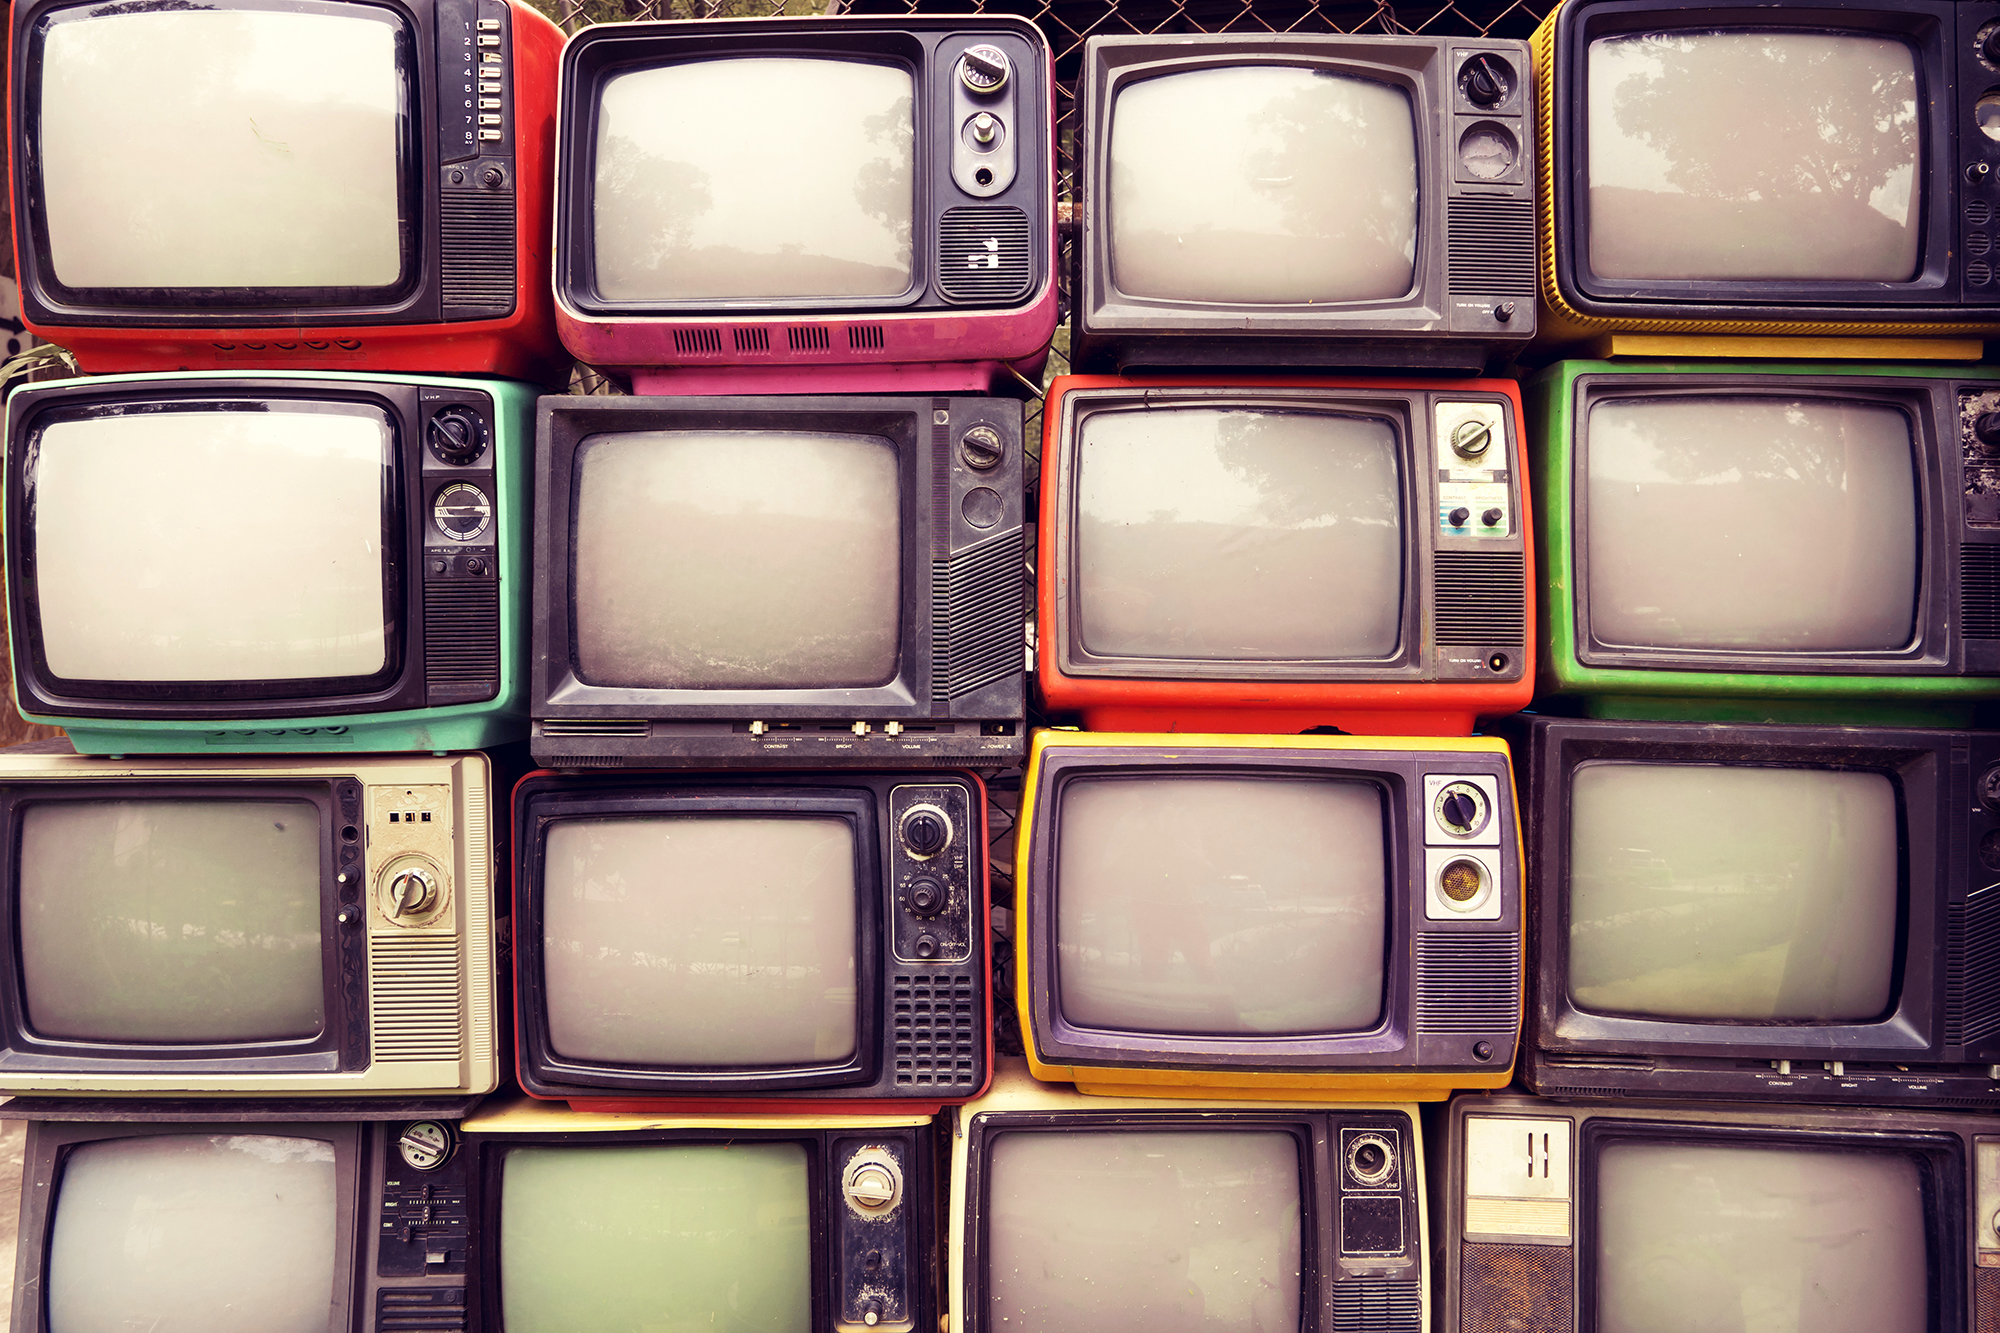 Desktop and Mobile Ad Revenue Surpasses TV for the First Time